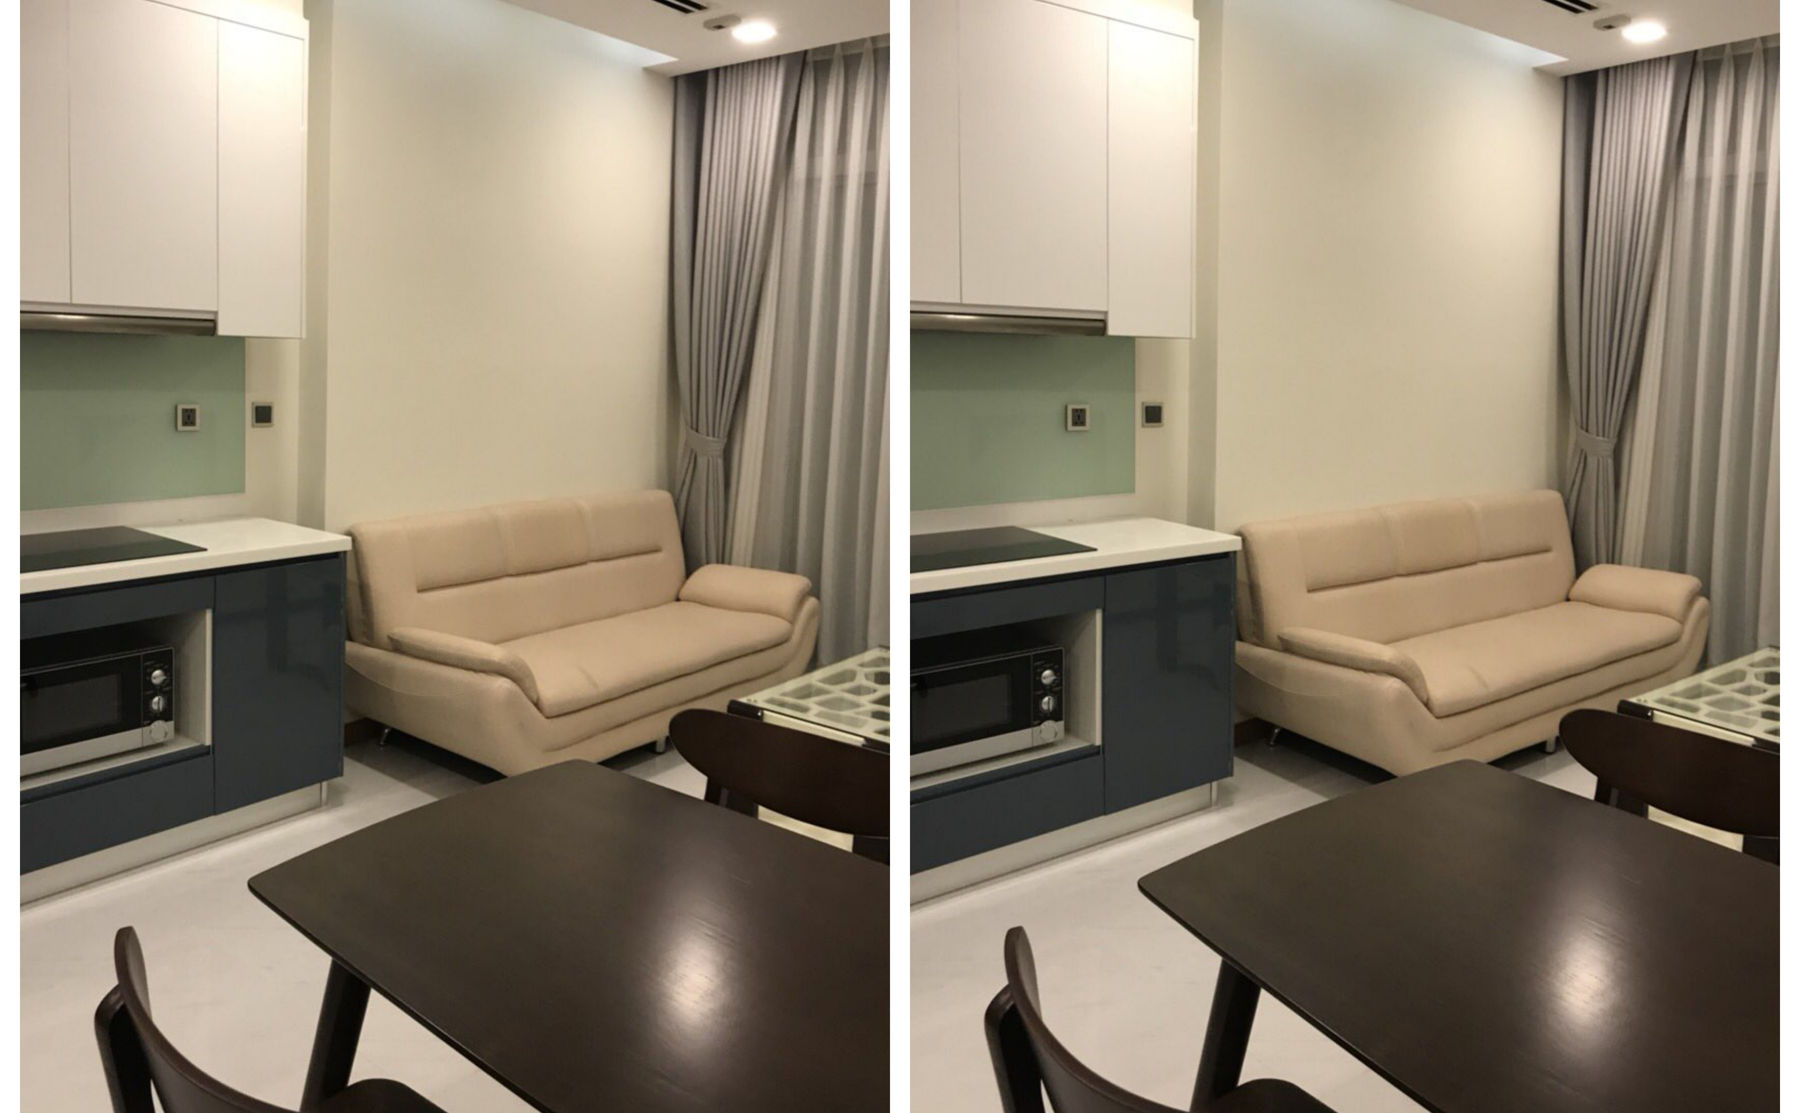 apartment for rent in binh thanh district BT105P222 (1)